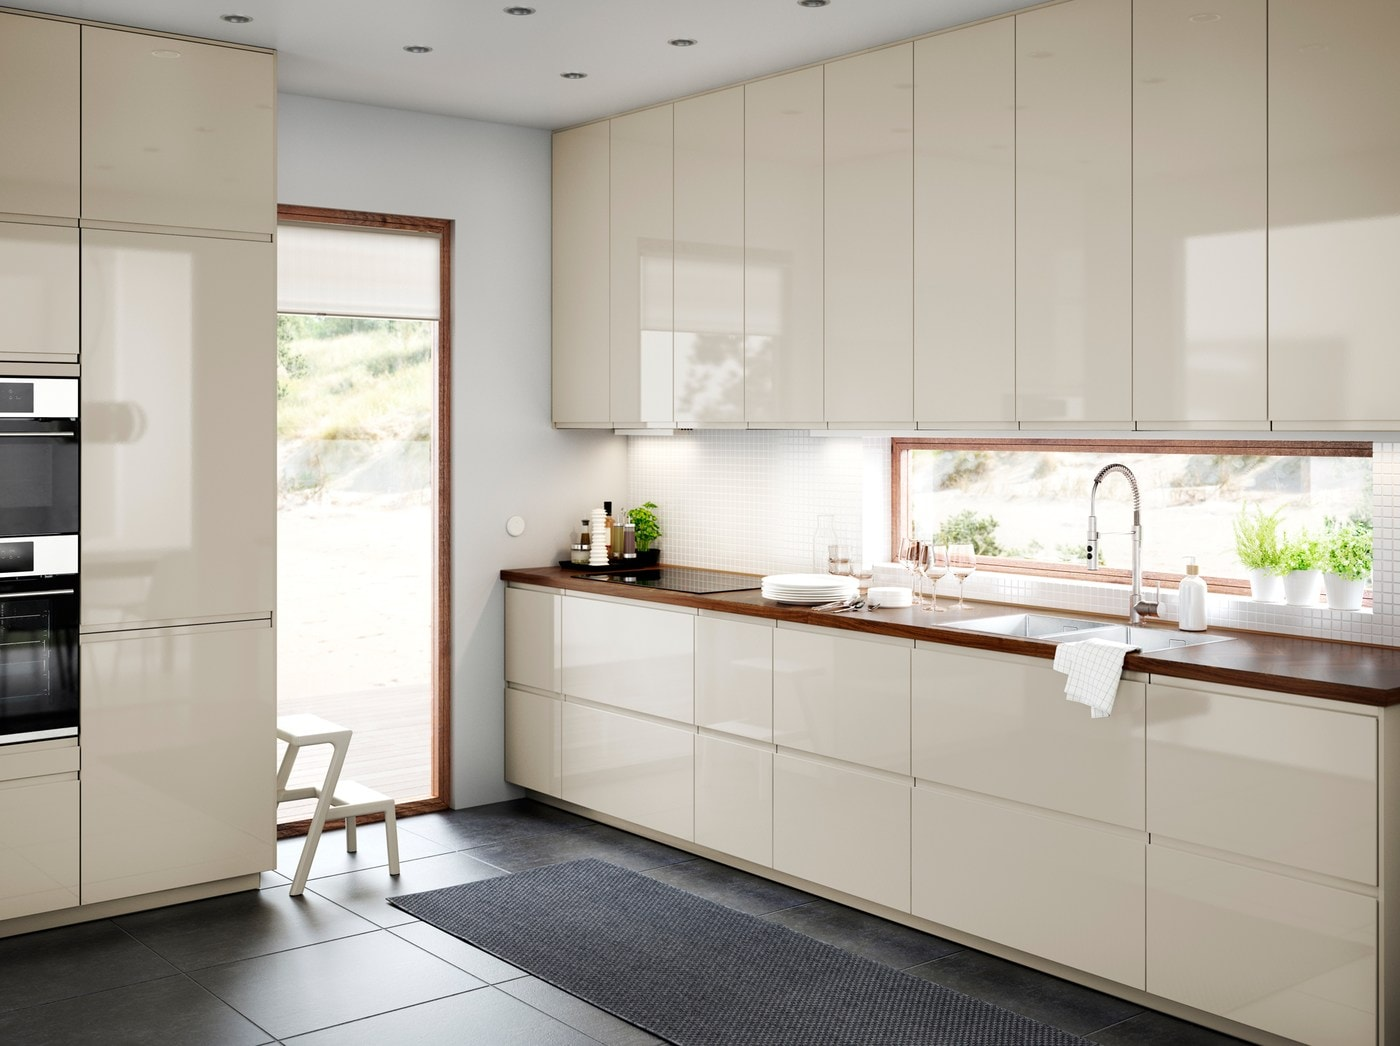 Modern Kitchen Cabinet Styles For Your Kitchen UAE - IKEA